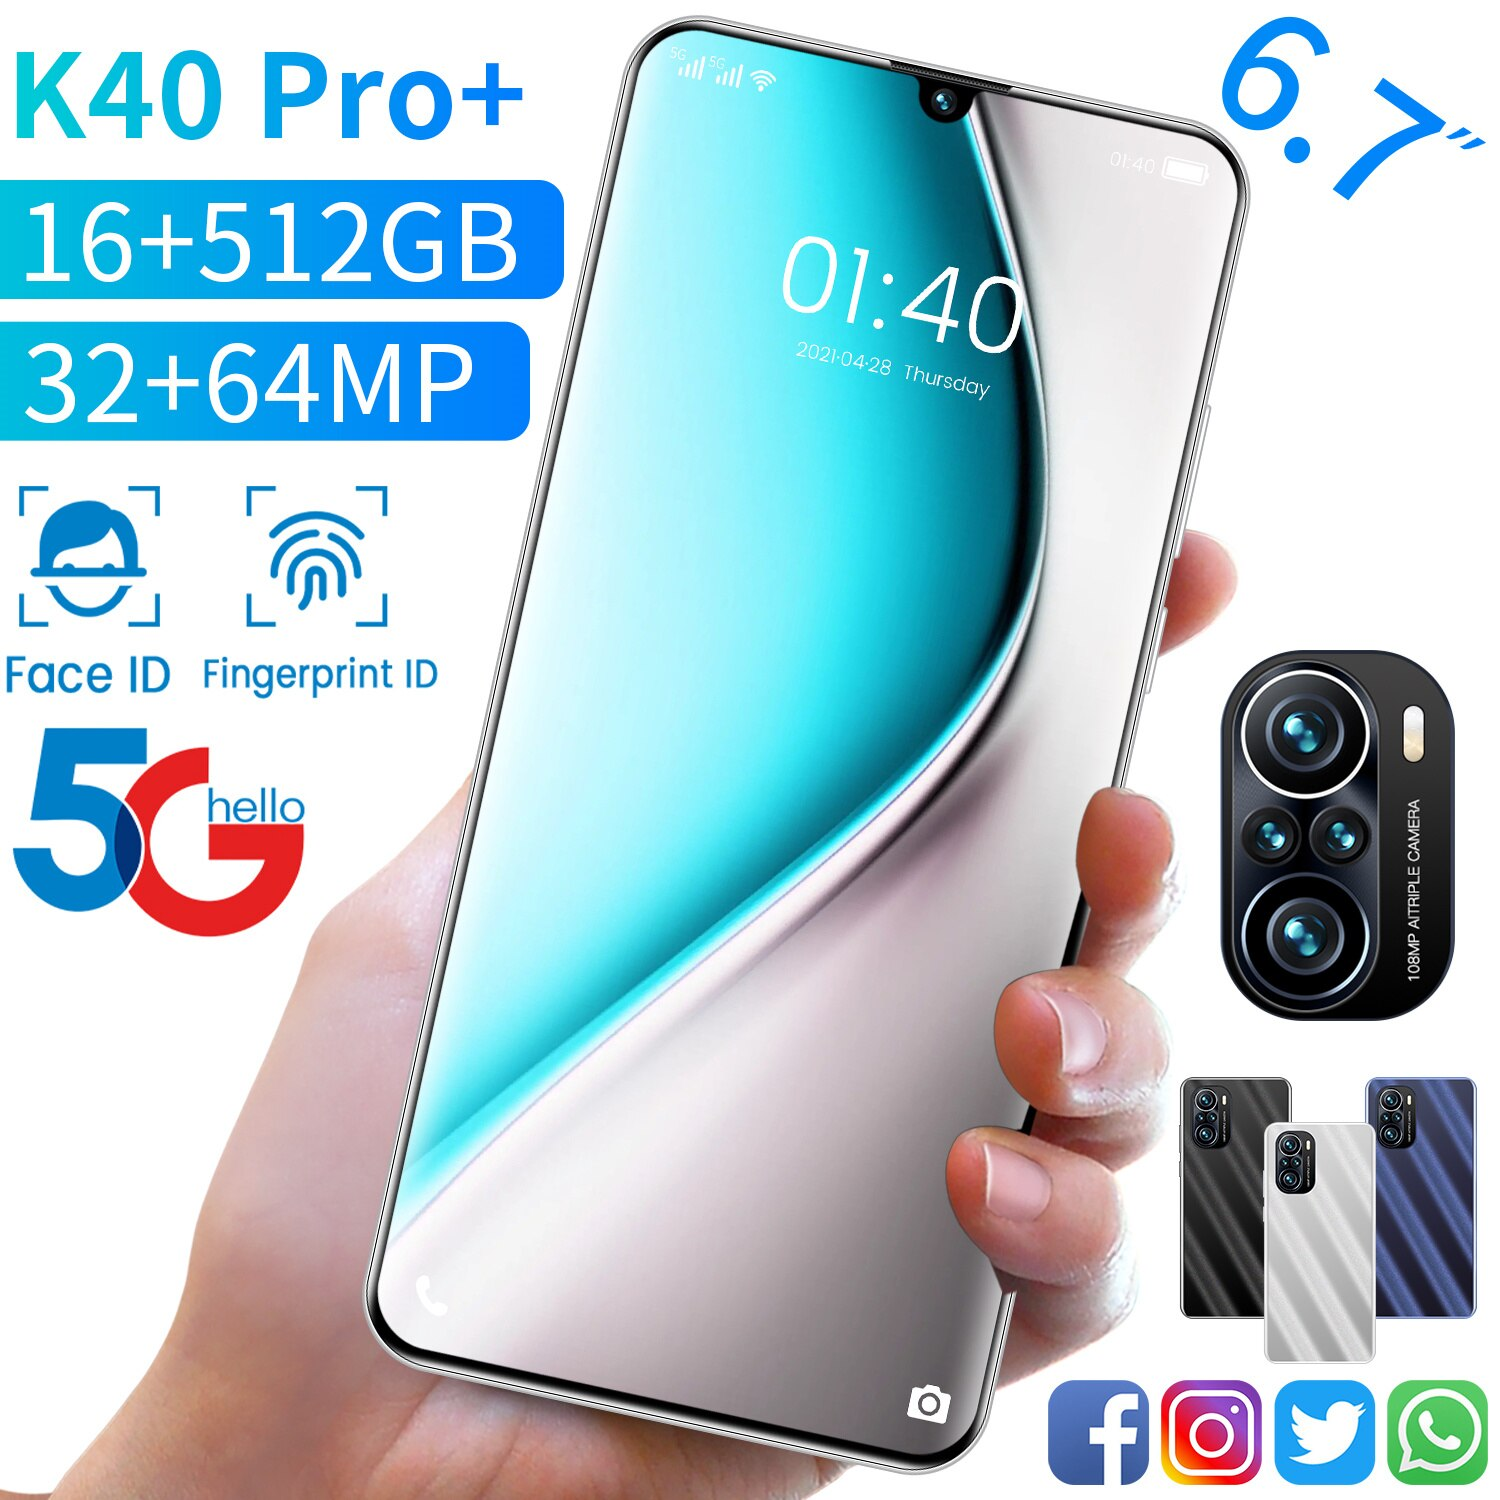 New Global Version K40 Pro+ 6.7Inch SmartPhone 6000mAh 16+512GB 32+64MP Android 11 Full Screen Face ID Dual SIM 4G 5G Cellphone